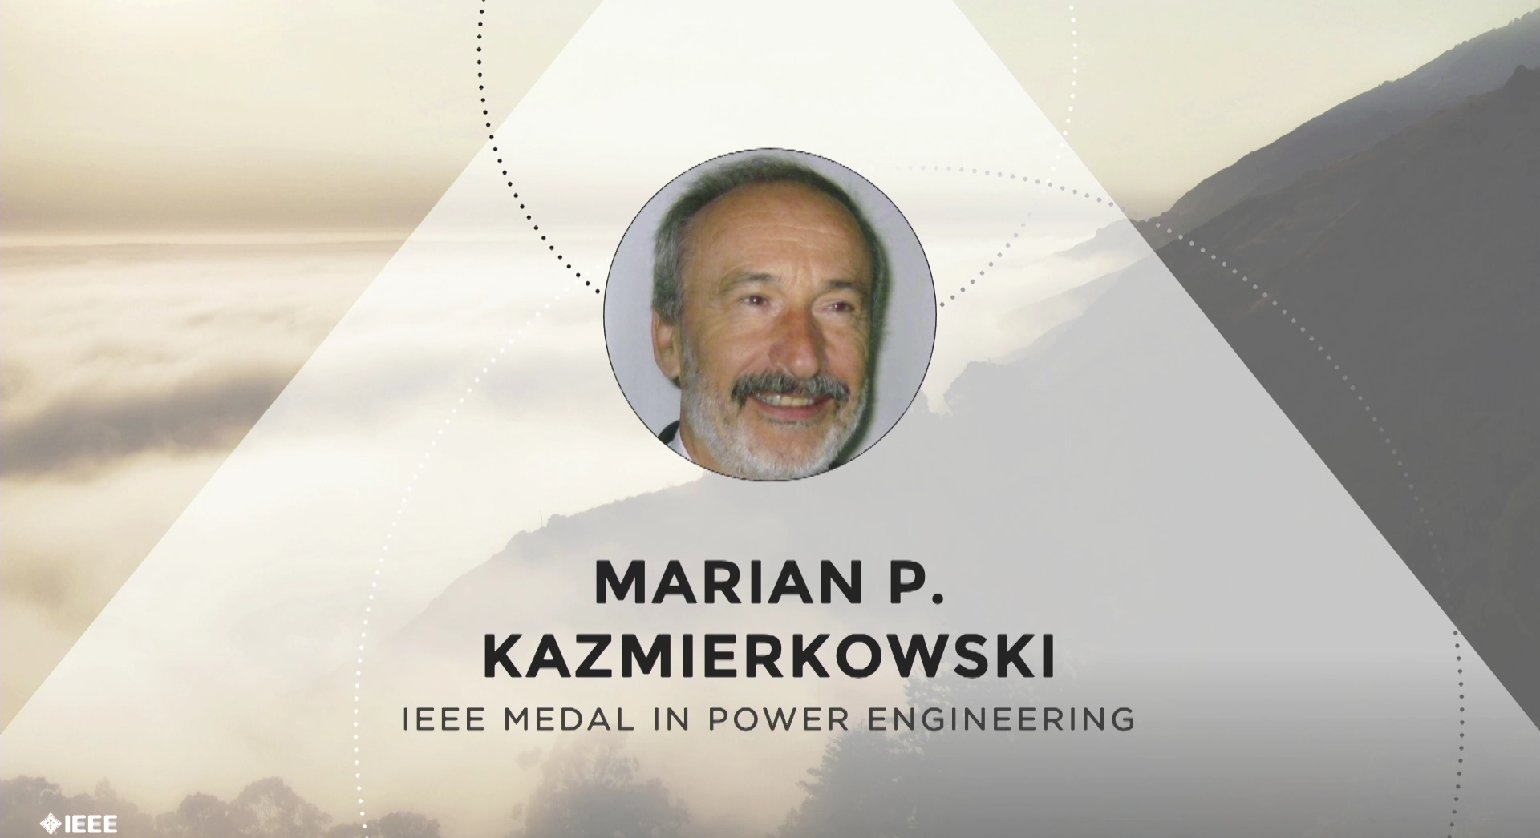 Marian P. Kazmierkowski receives the IEEE Medal in Power Engineering - Honors Ceremony 2017